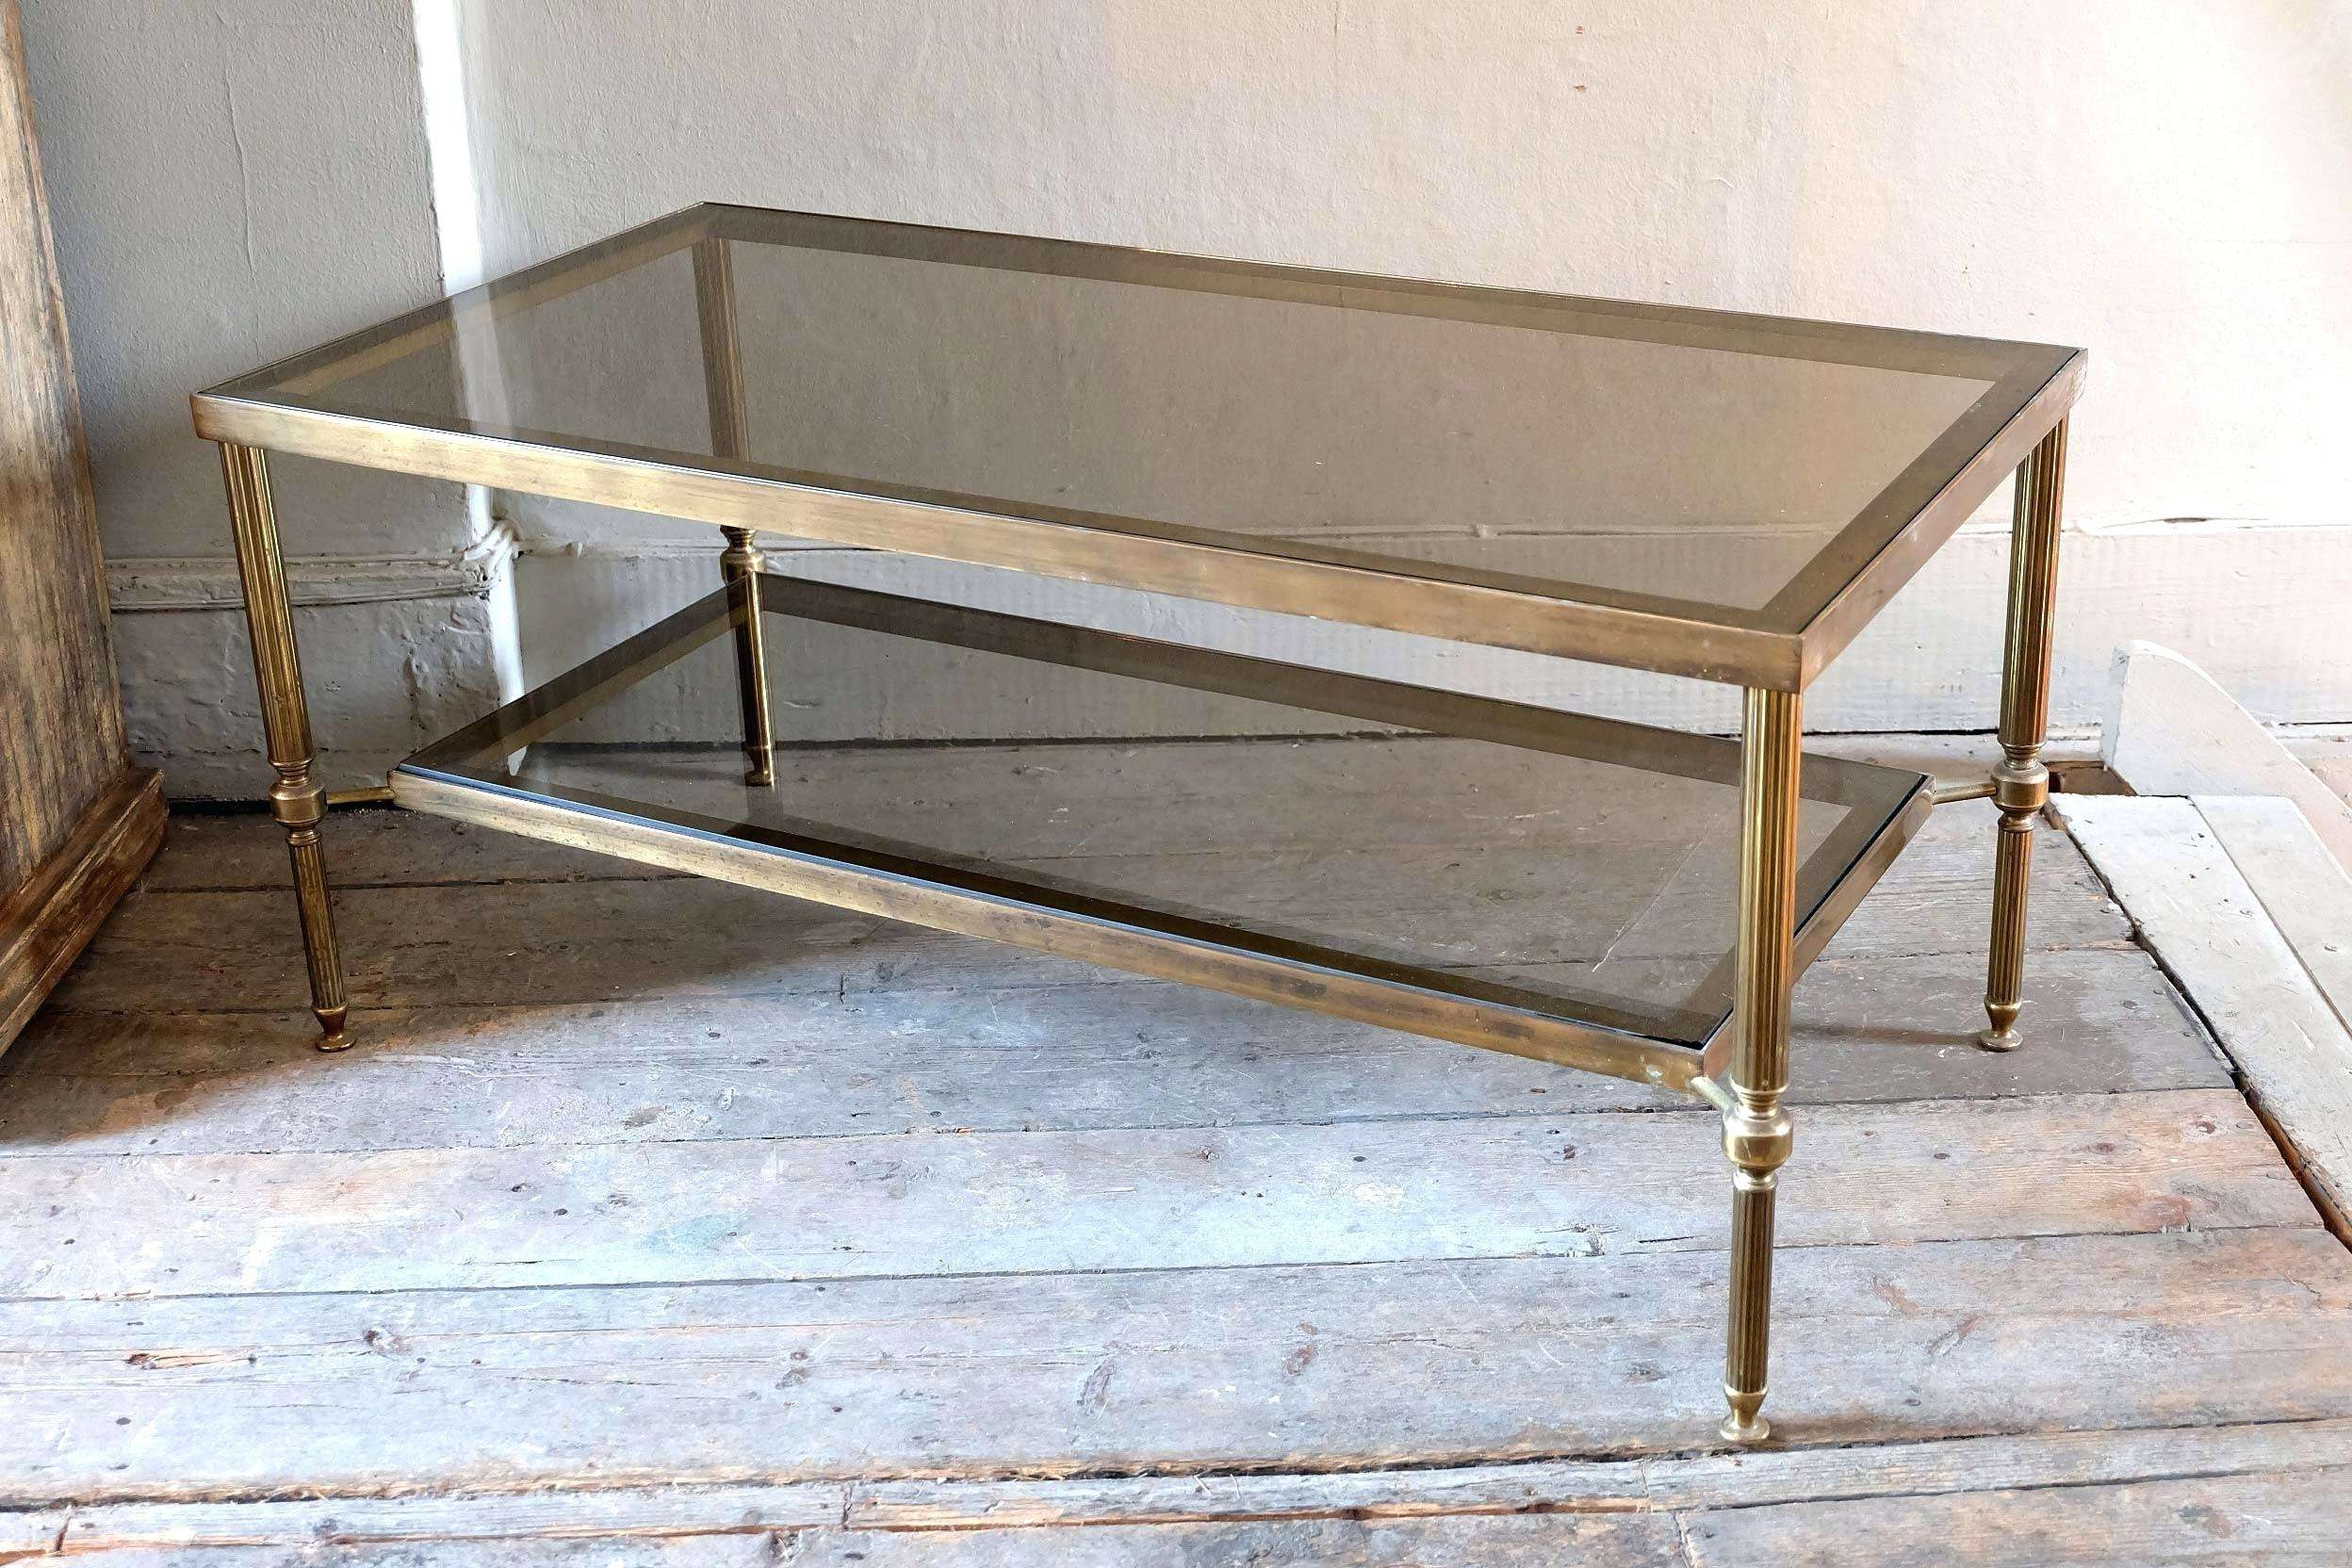 Antique Glass Coffee Tables Brass And Table Decoration Ideas Throughout Most Recently Released Antique Brass Glass Coffee Tables (View 5 of 20)